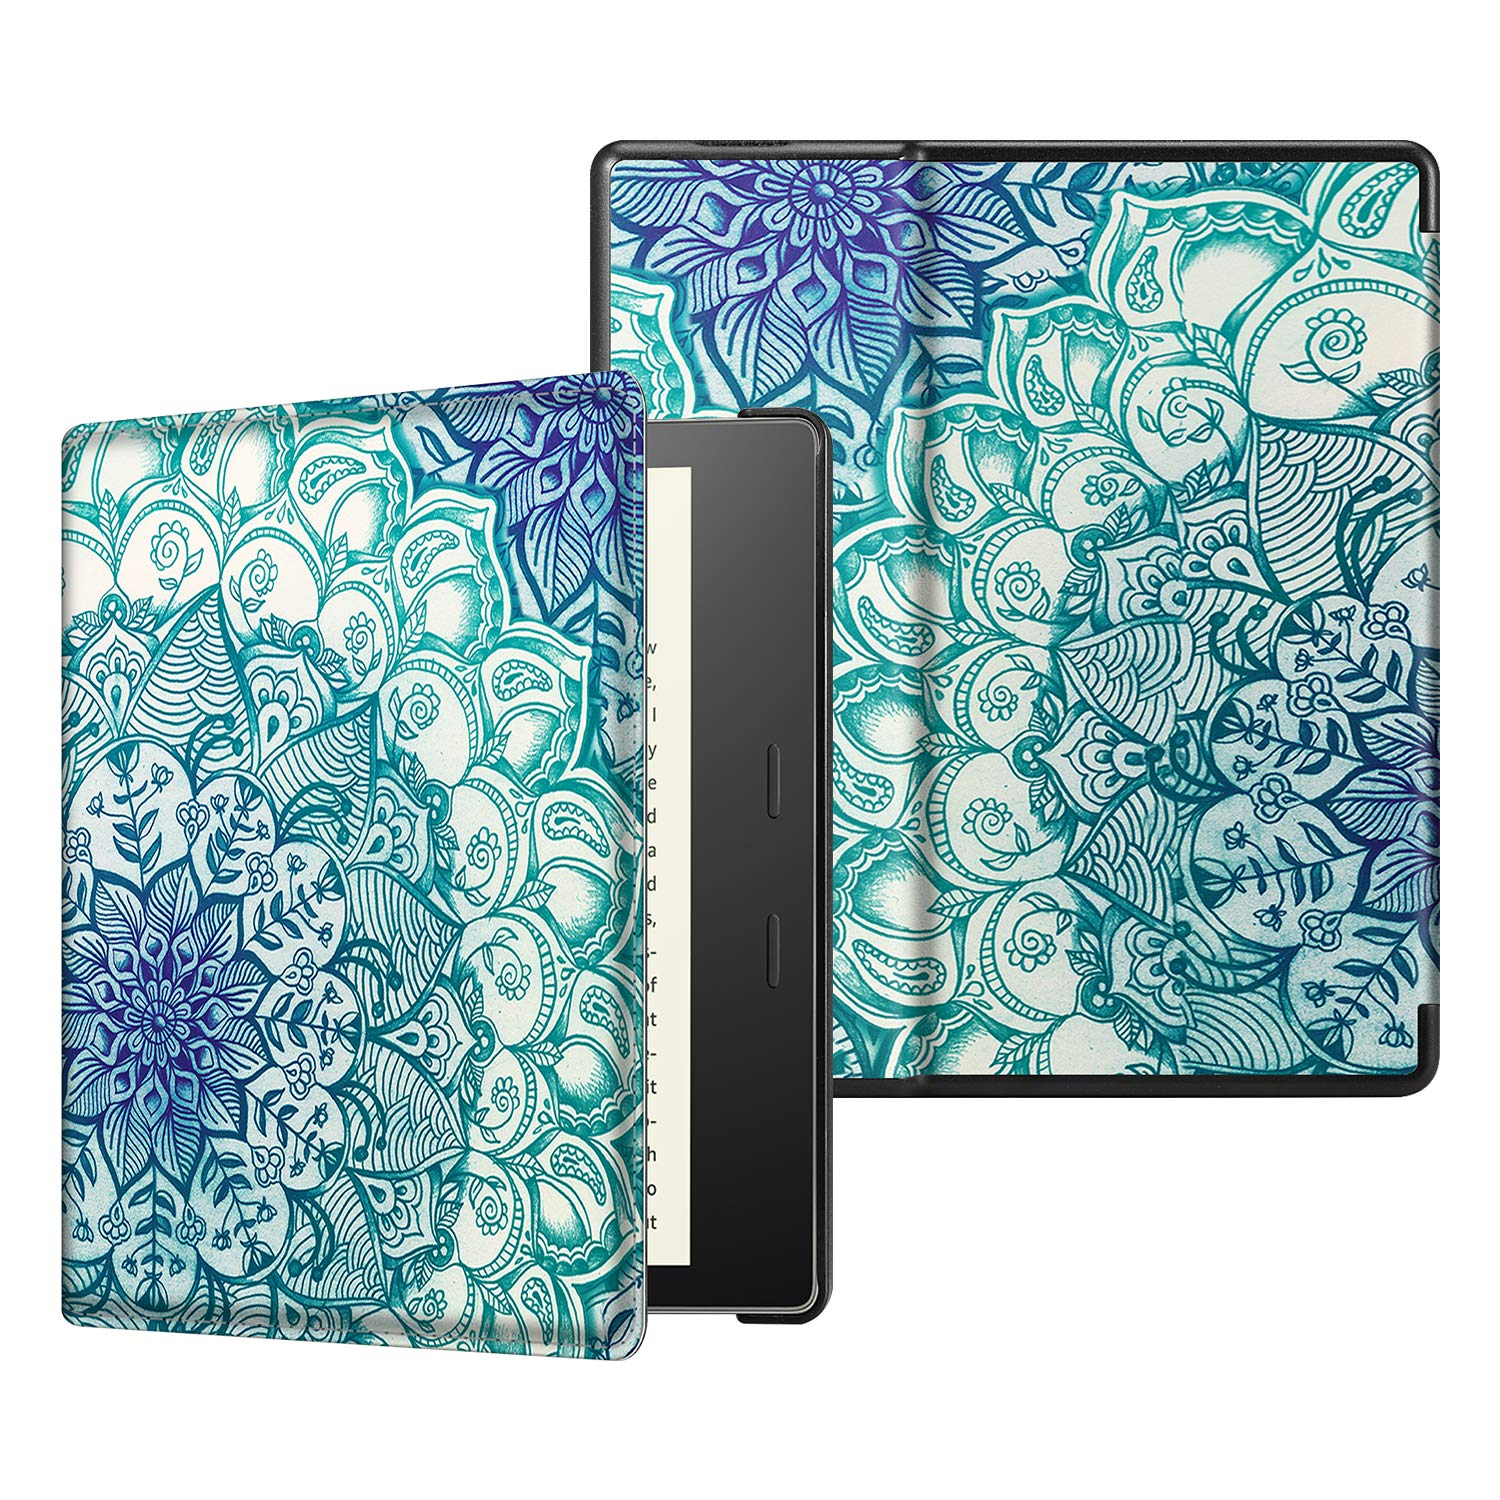 CaseBot Slimshell Case for All-New Kindle Oasis (10th Gen, 2019 Release and 9th Gen, 2017 Release) - Premium PU Leather Lightweight Protective Cover with Auto Wake Sleep, Emerald Illusions